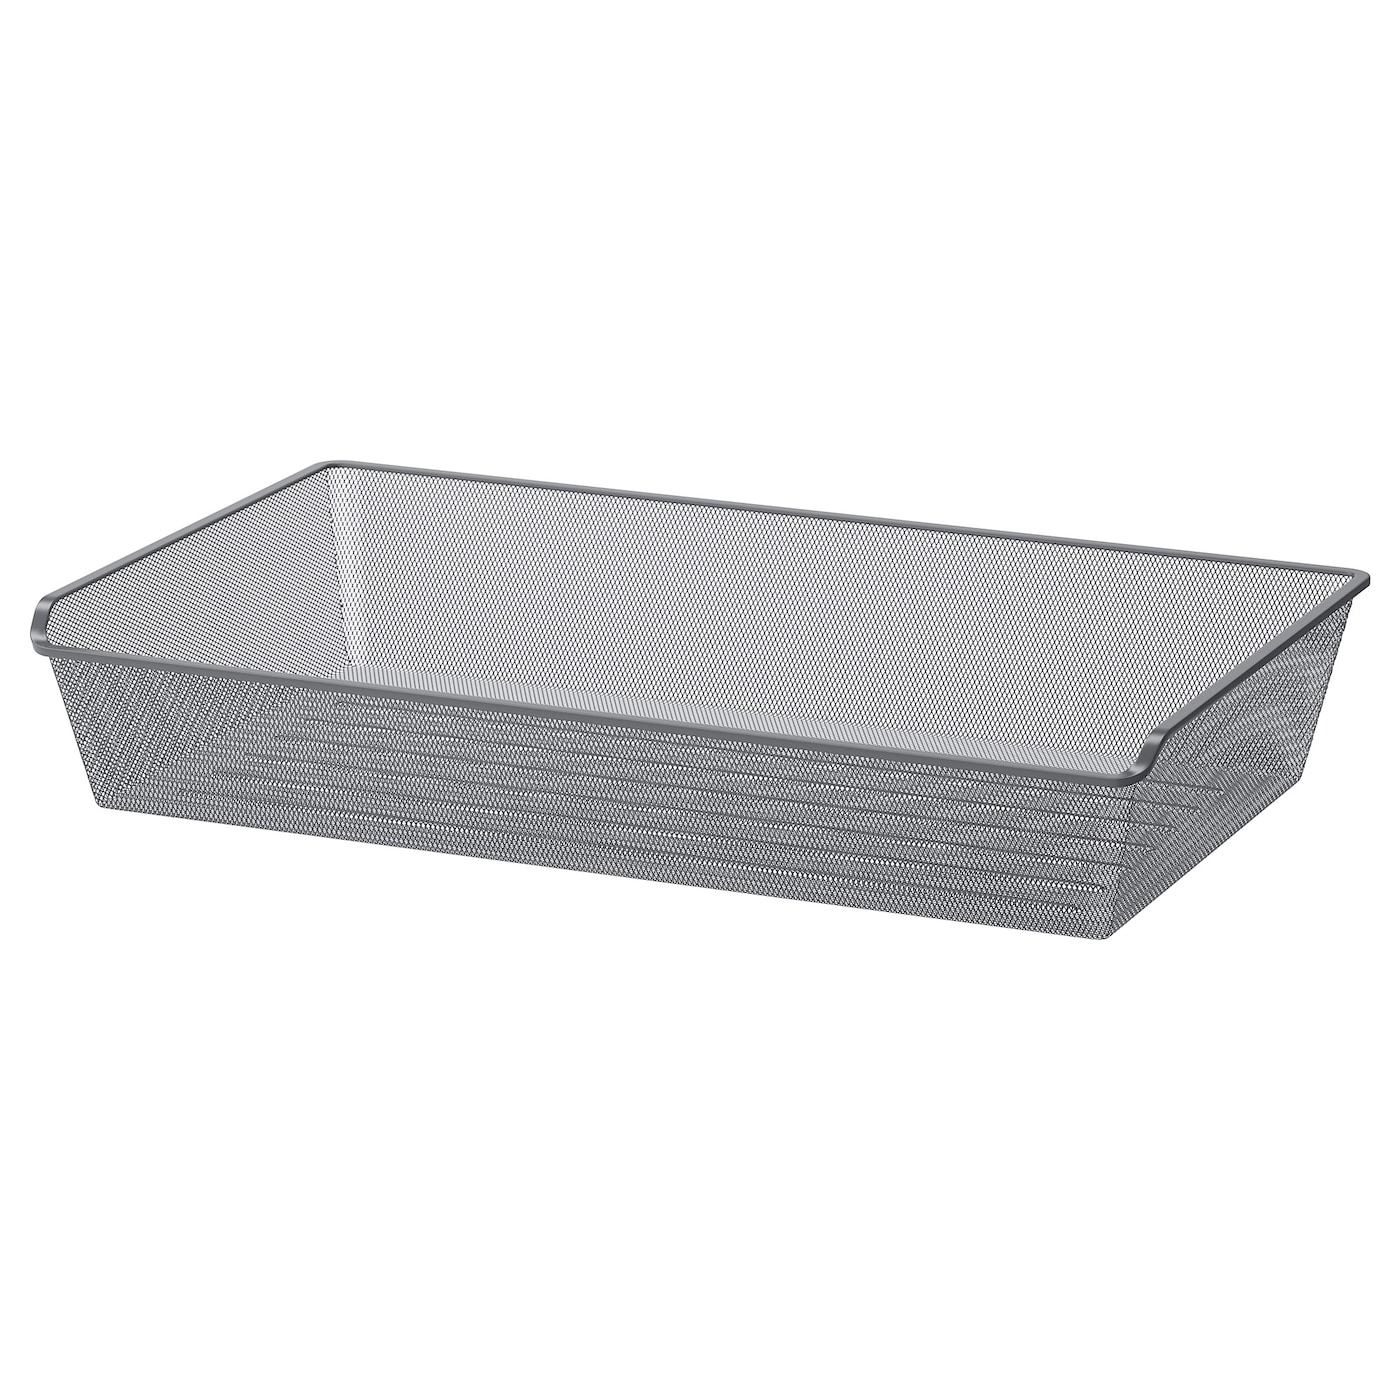 IKEA KOMPLEMENT mesh basket 10 year guarantee. Read about the terms in the guarantee brochure.